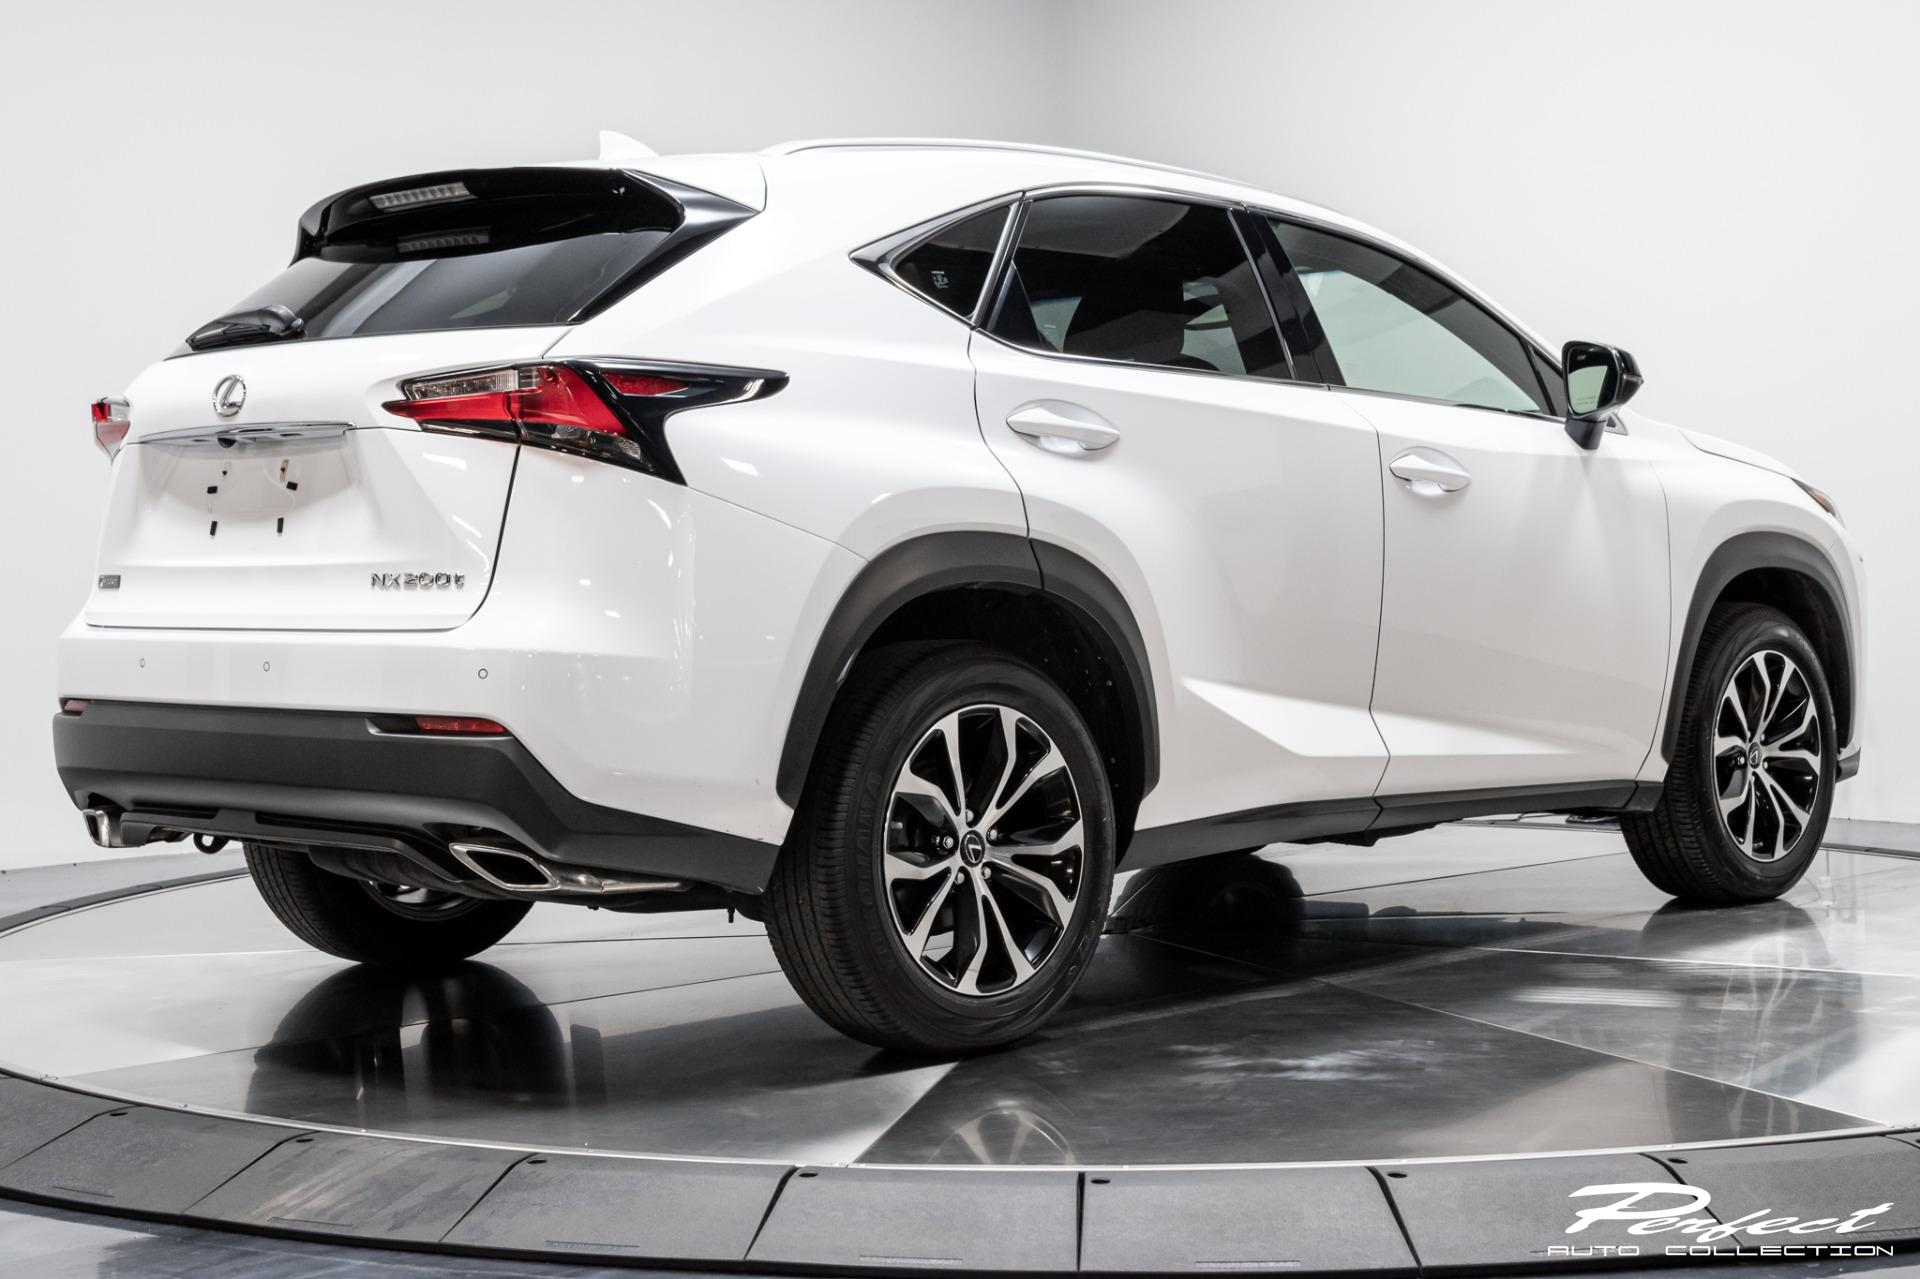 Used 2016 Lexus NX 200t F SPORT for sale $29,893 at Perfect Auto Collection in Akron OH 44310 4